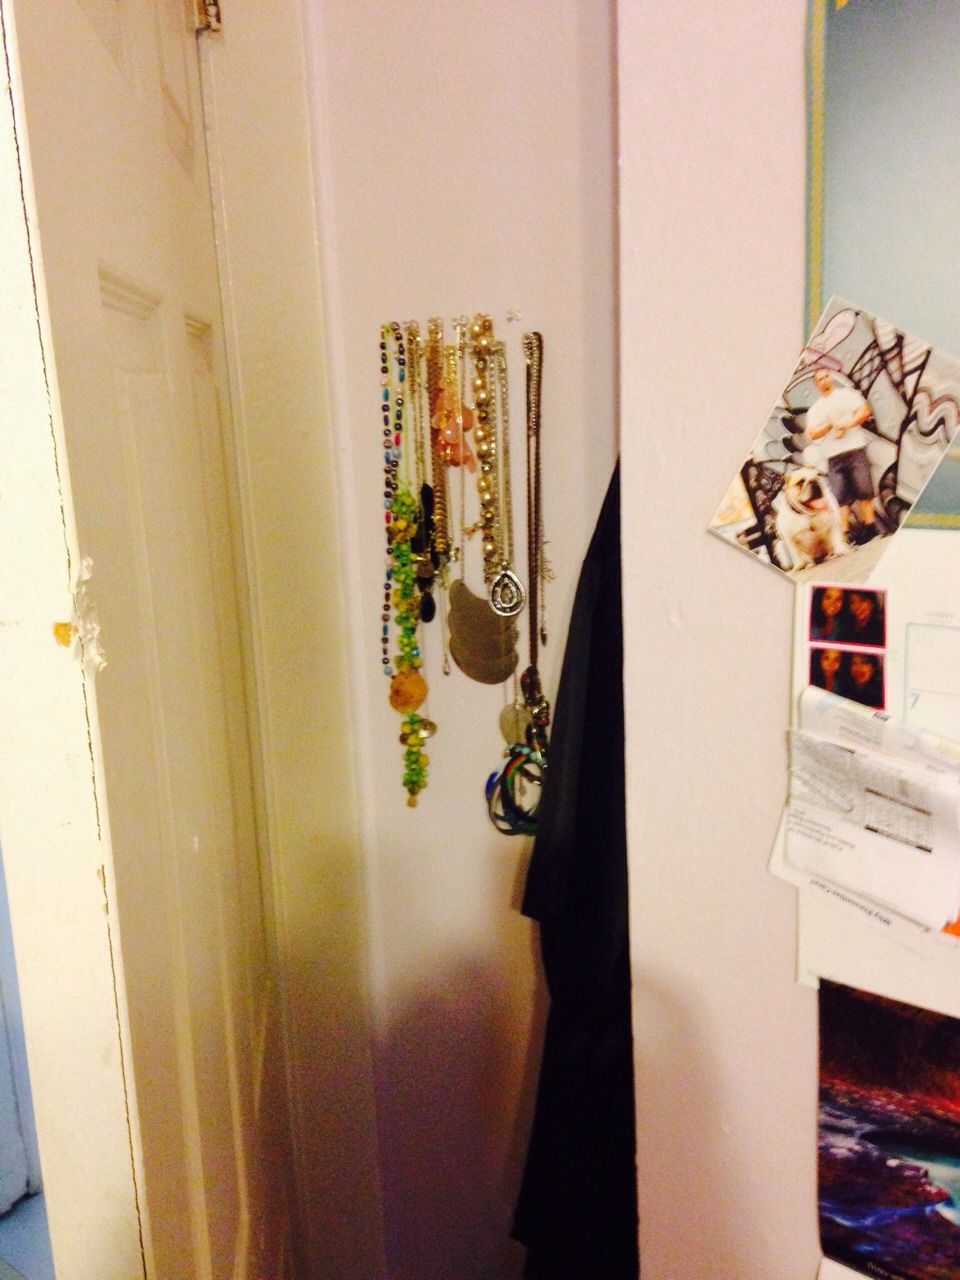 Finally hang up your jewelry. I do bracelets as well. My jewelry is a bit messy right now. I am also very simple and don't like too much on my wall so that's why I hid it behind the door.